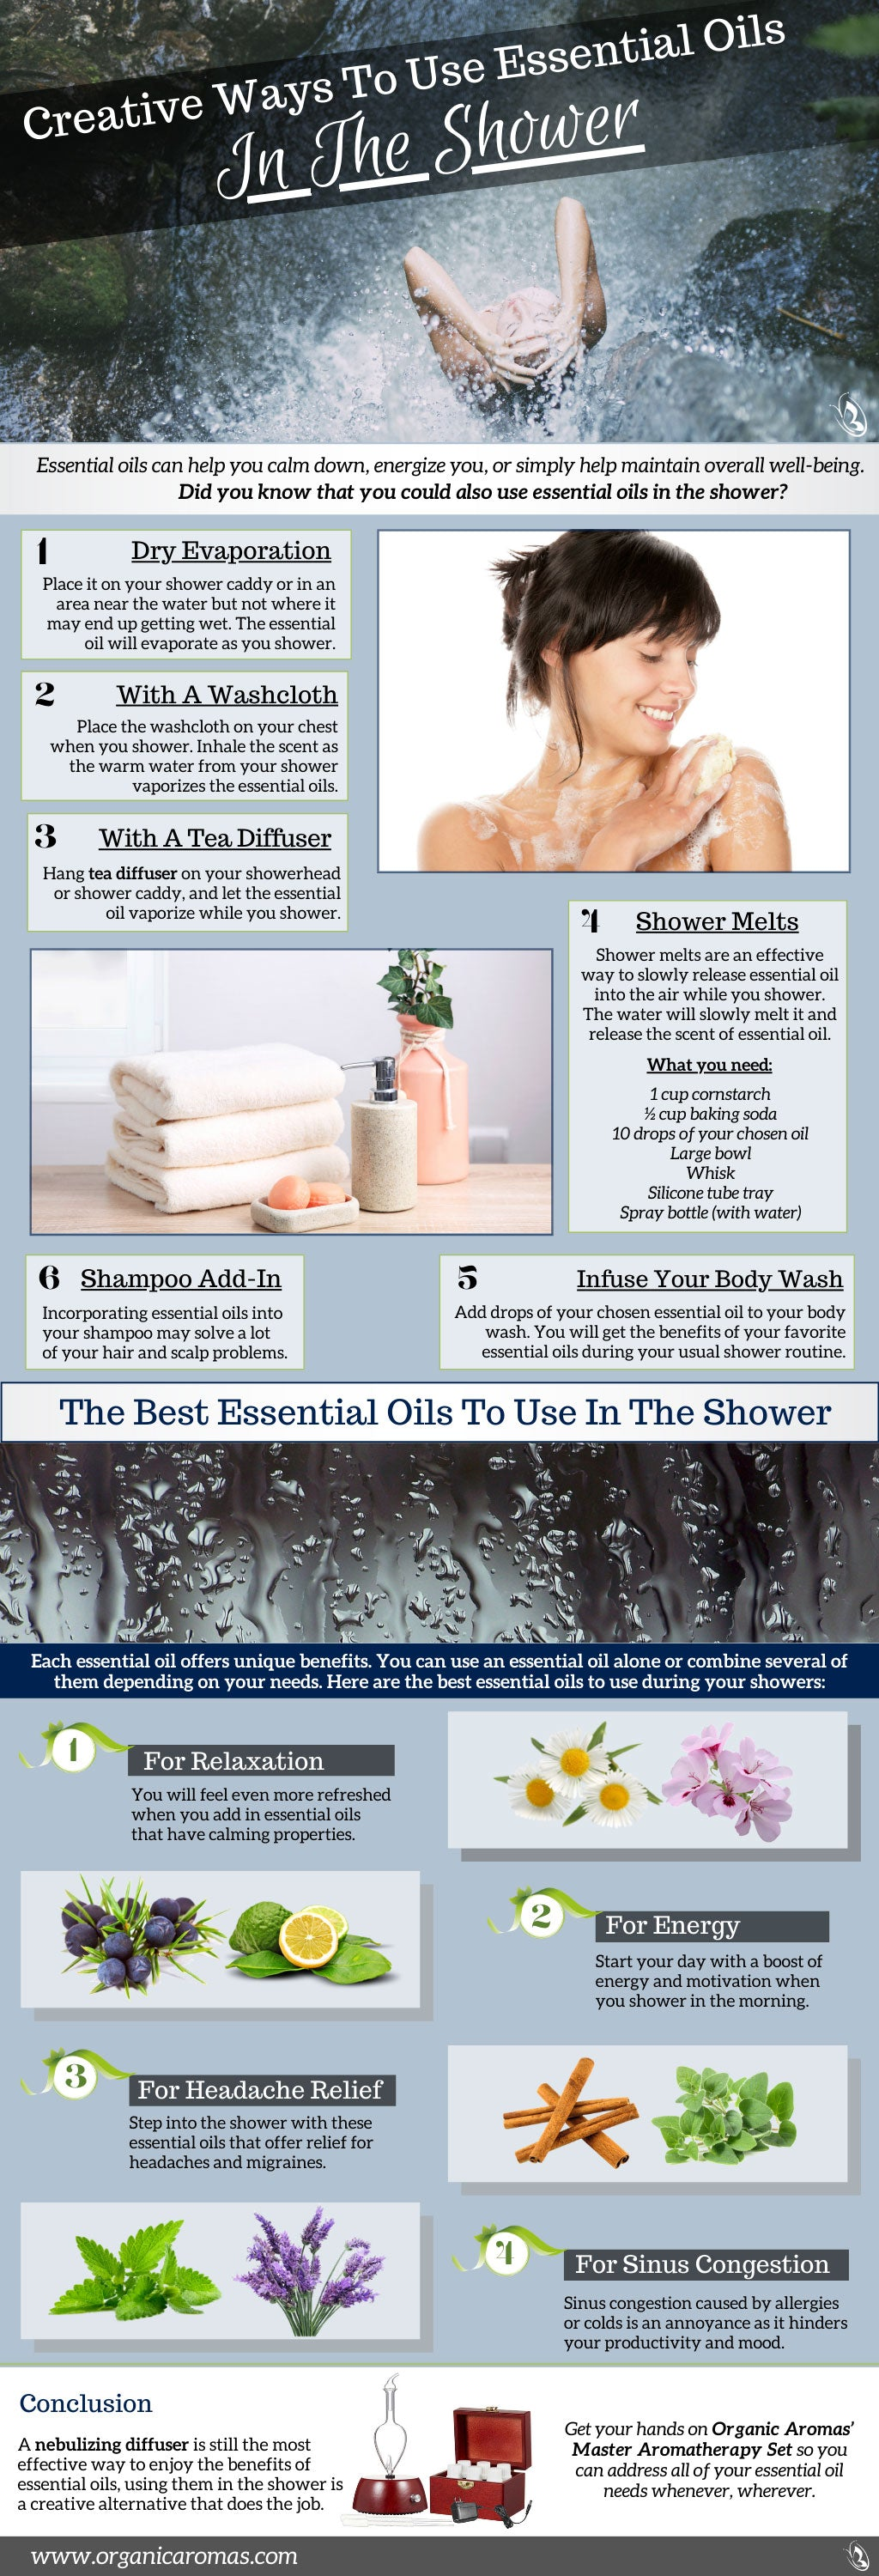 Creative Ways To Use Essential Oils In The Shower